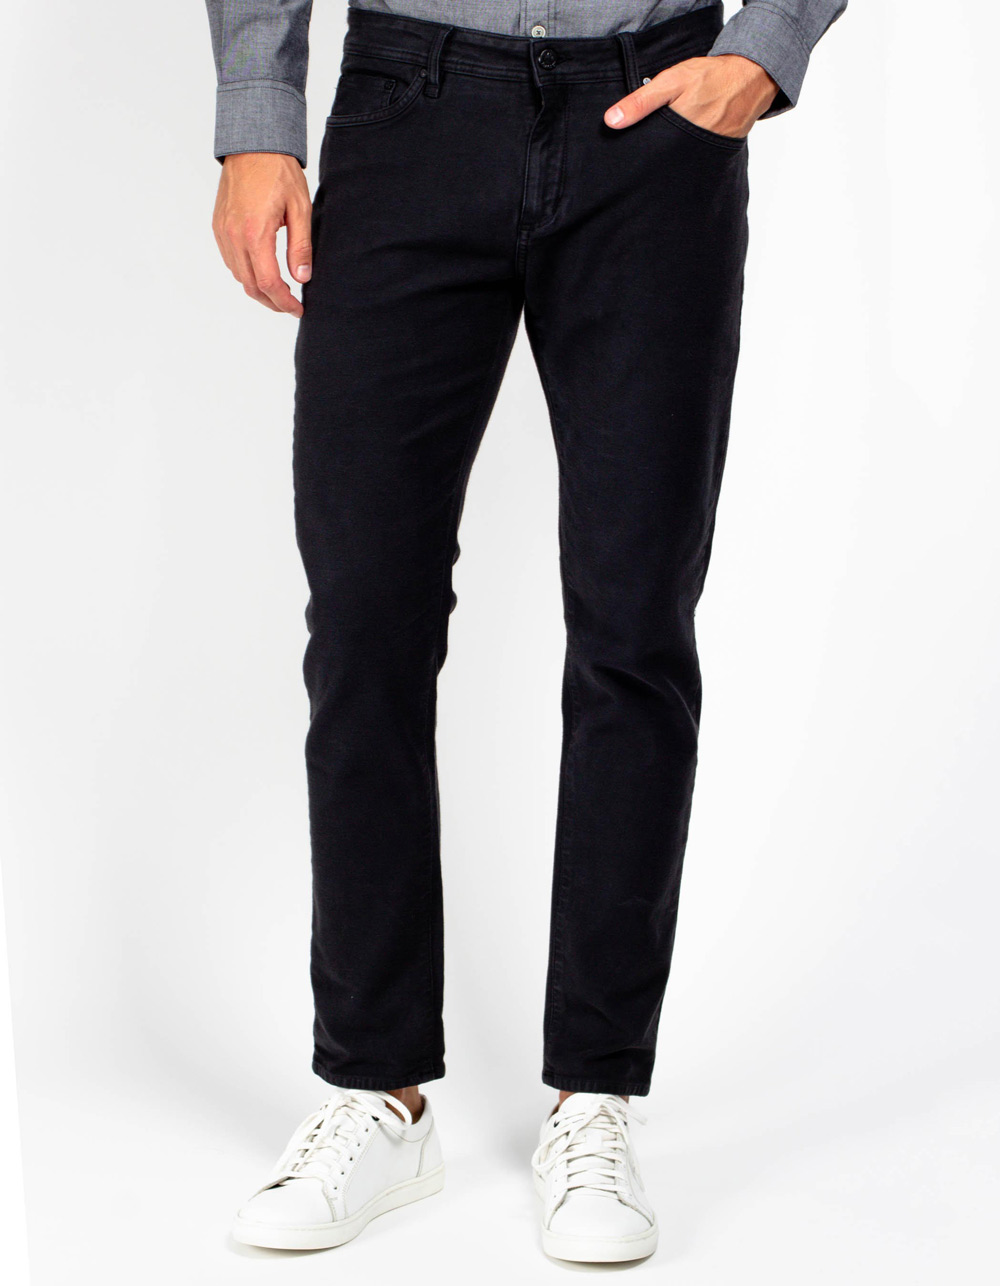 KOGARASHI 5 pockets oxford trousers